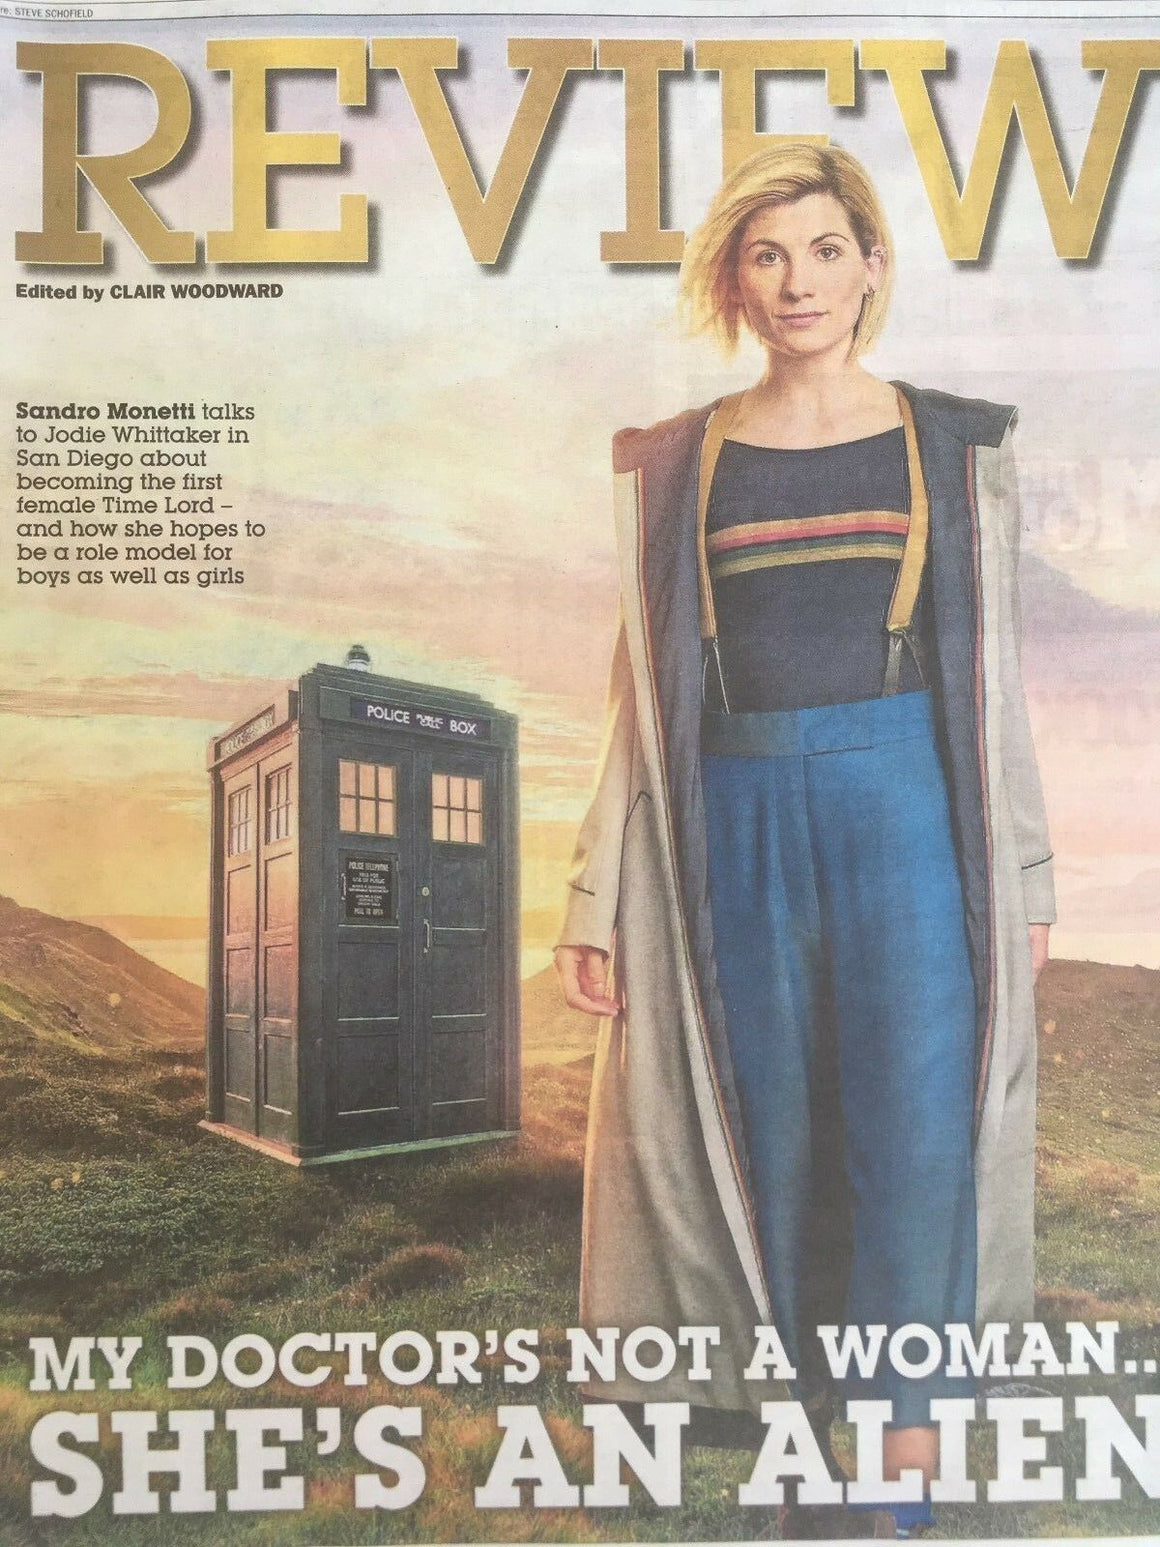 UK EXPRESS REVIEW July 2018: JODIE WHITTAKER (DOCTOR WHO) COVER FEATURE